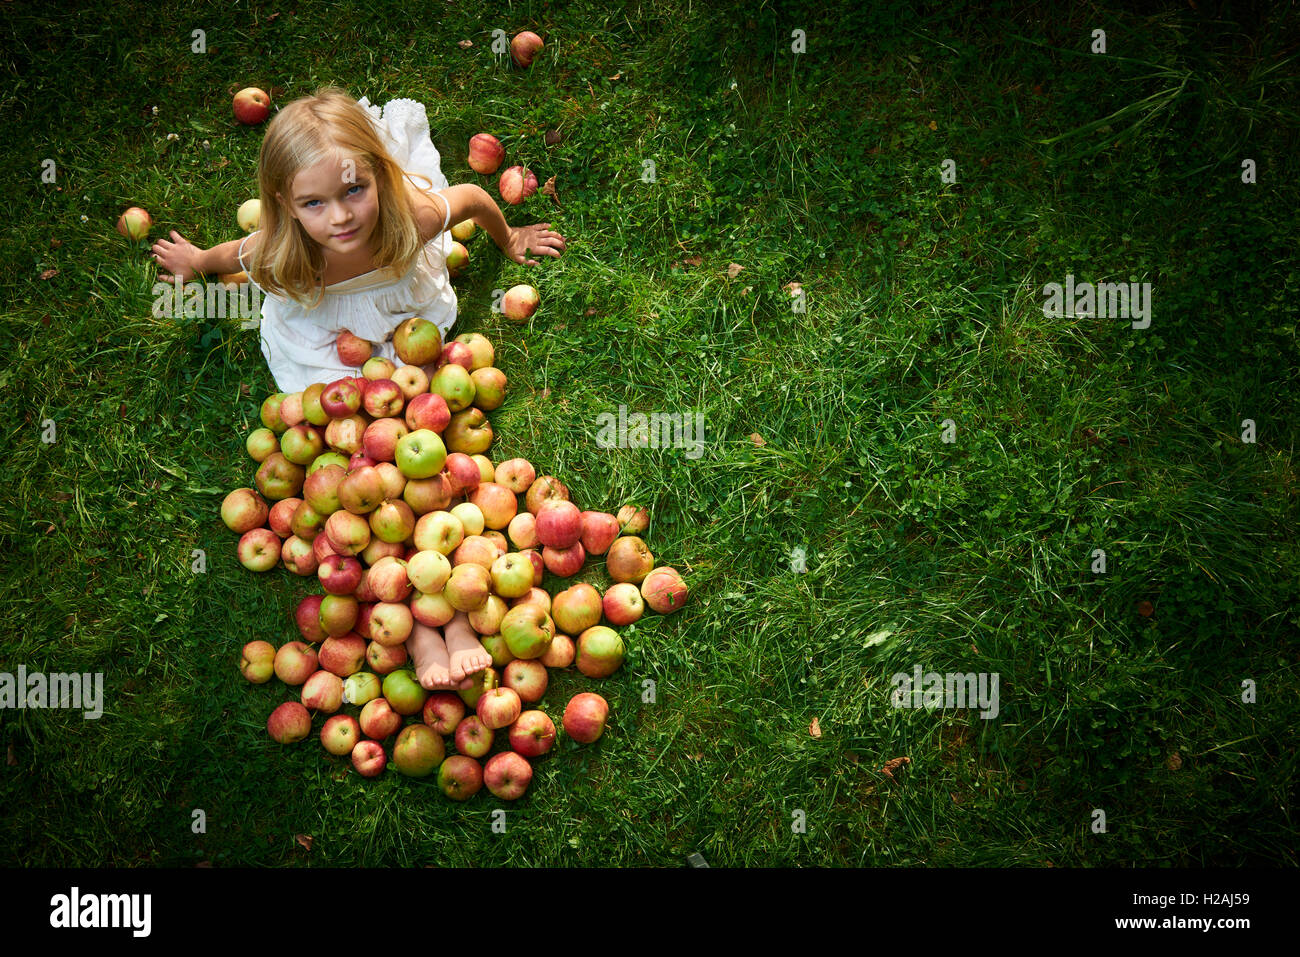 little cute girl collects the apples scattered on a grass in a